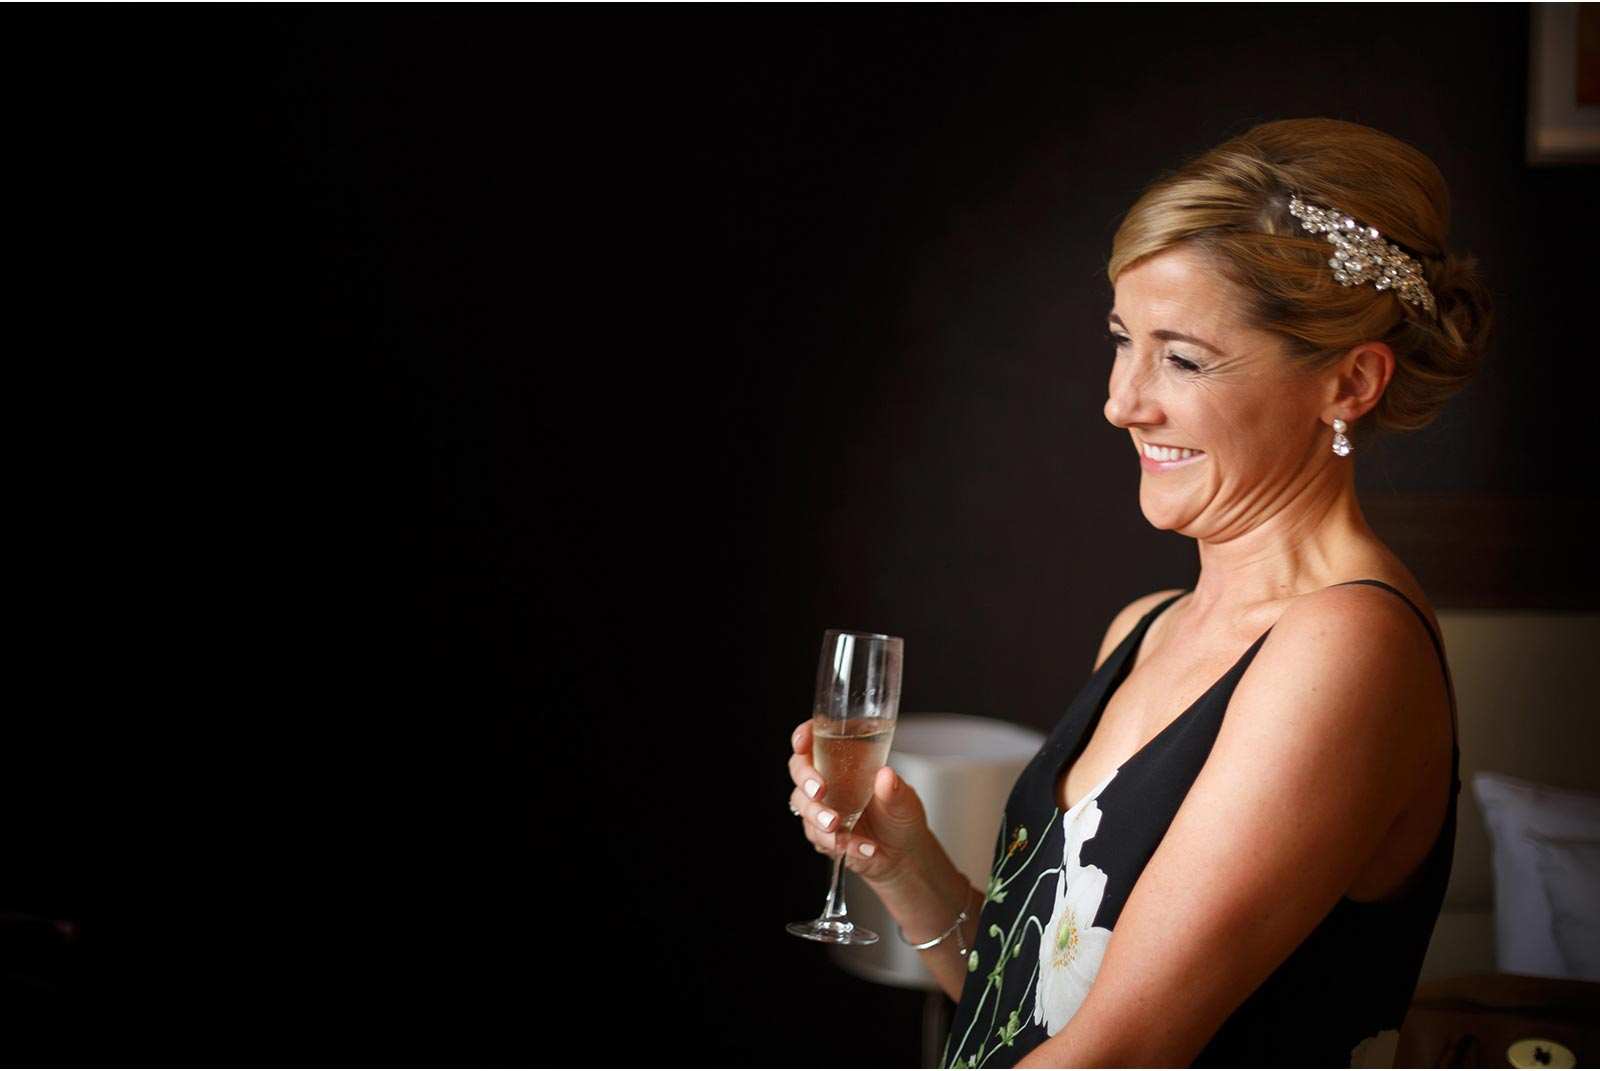 bride enjoying preperations with a glass of champagne